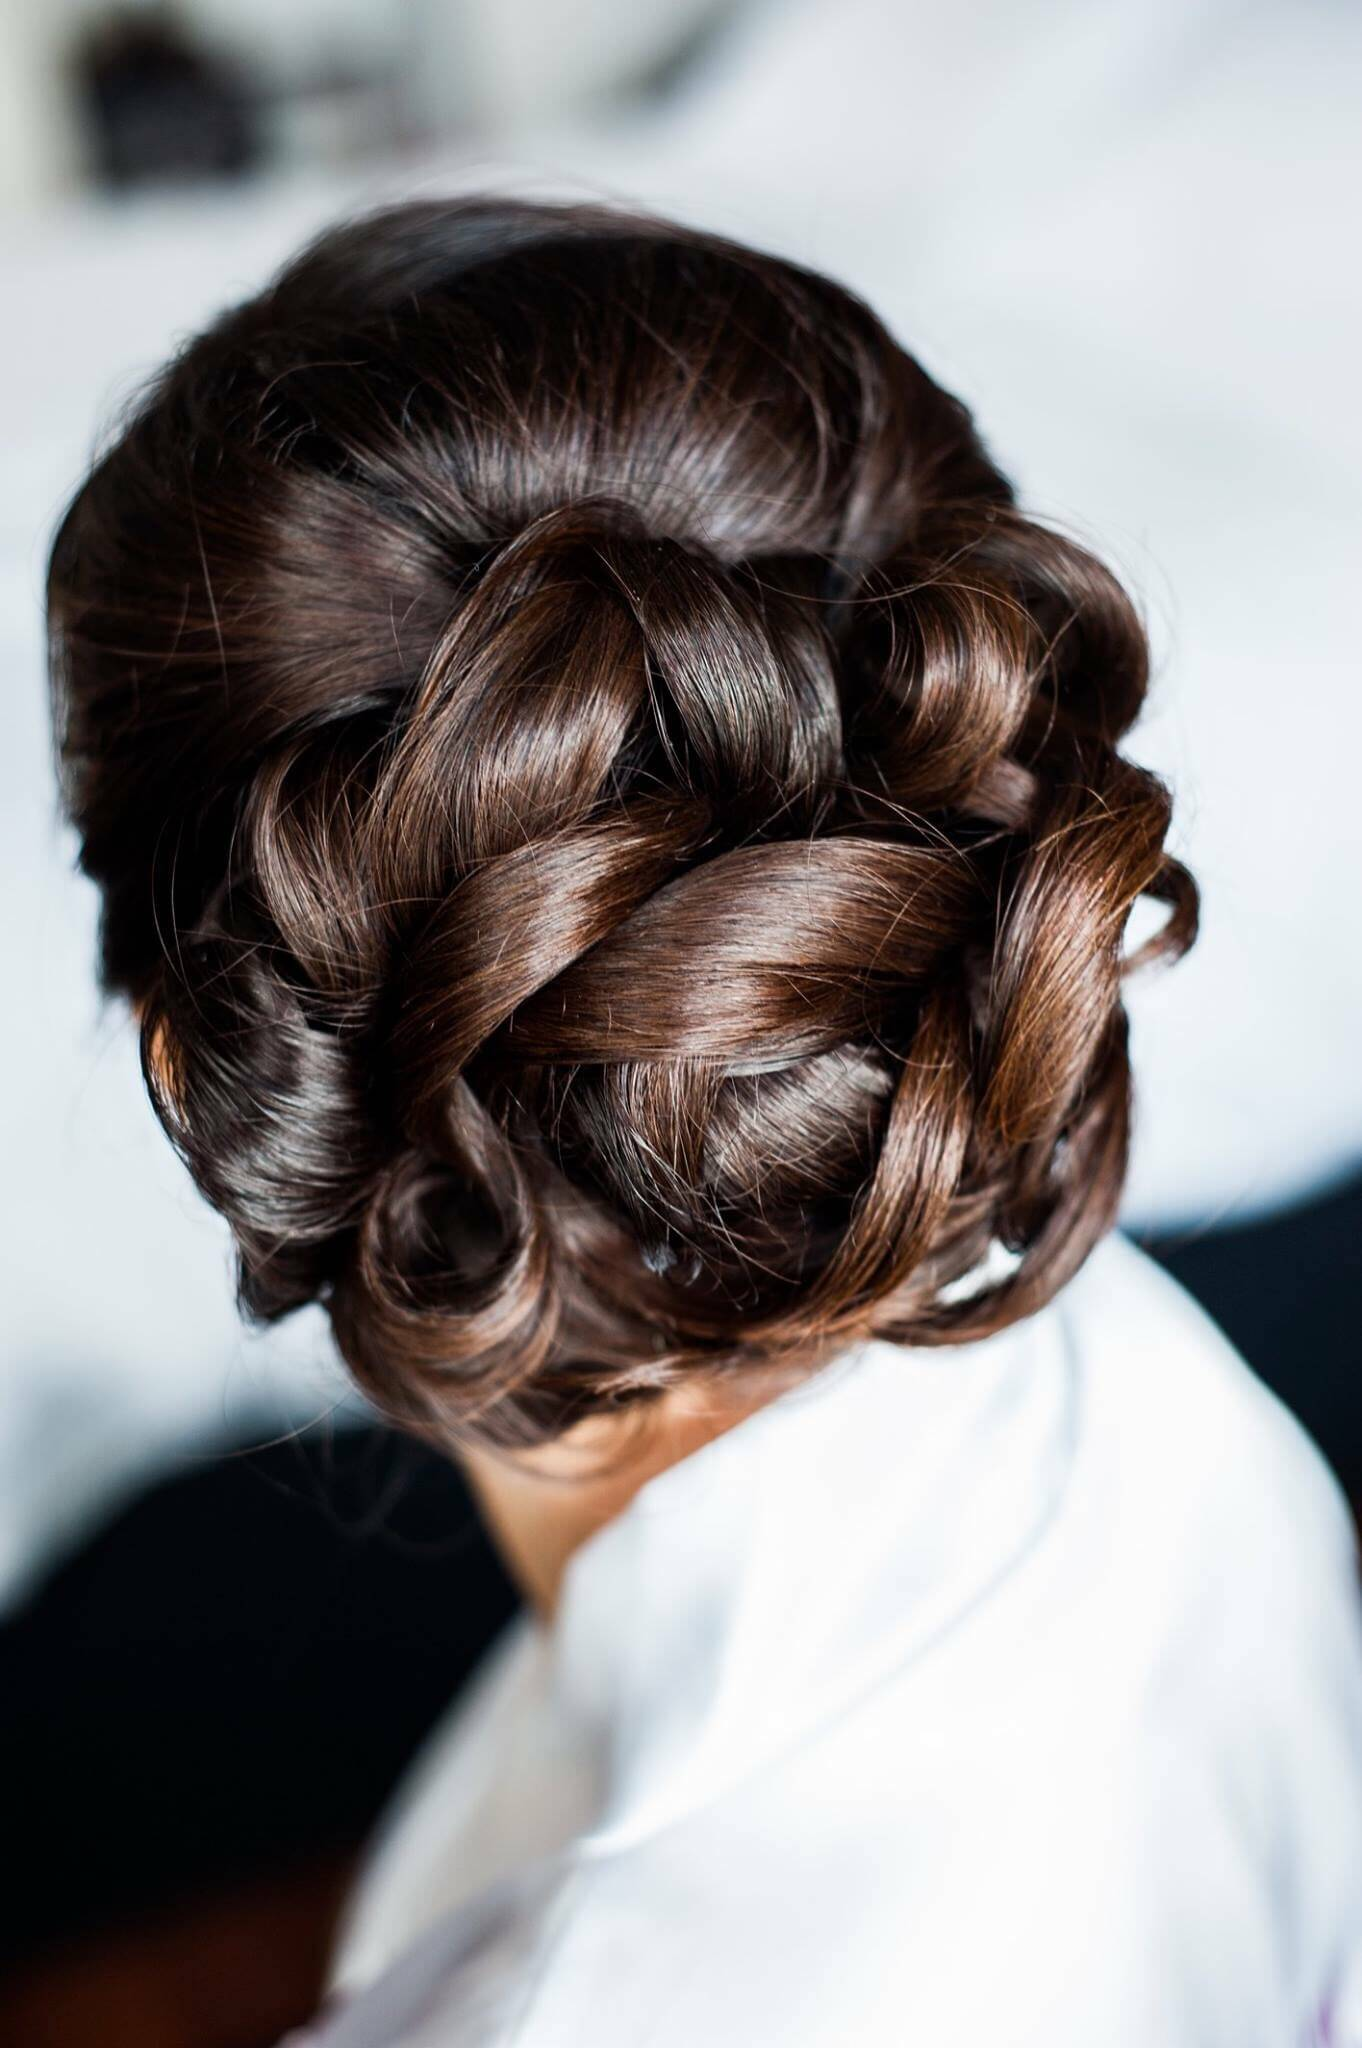 hair-salon-jacksonville-wedding-hairstyles-43